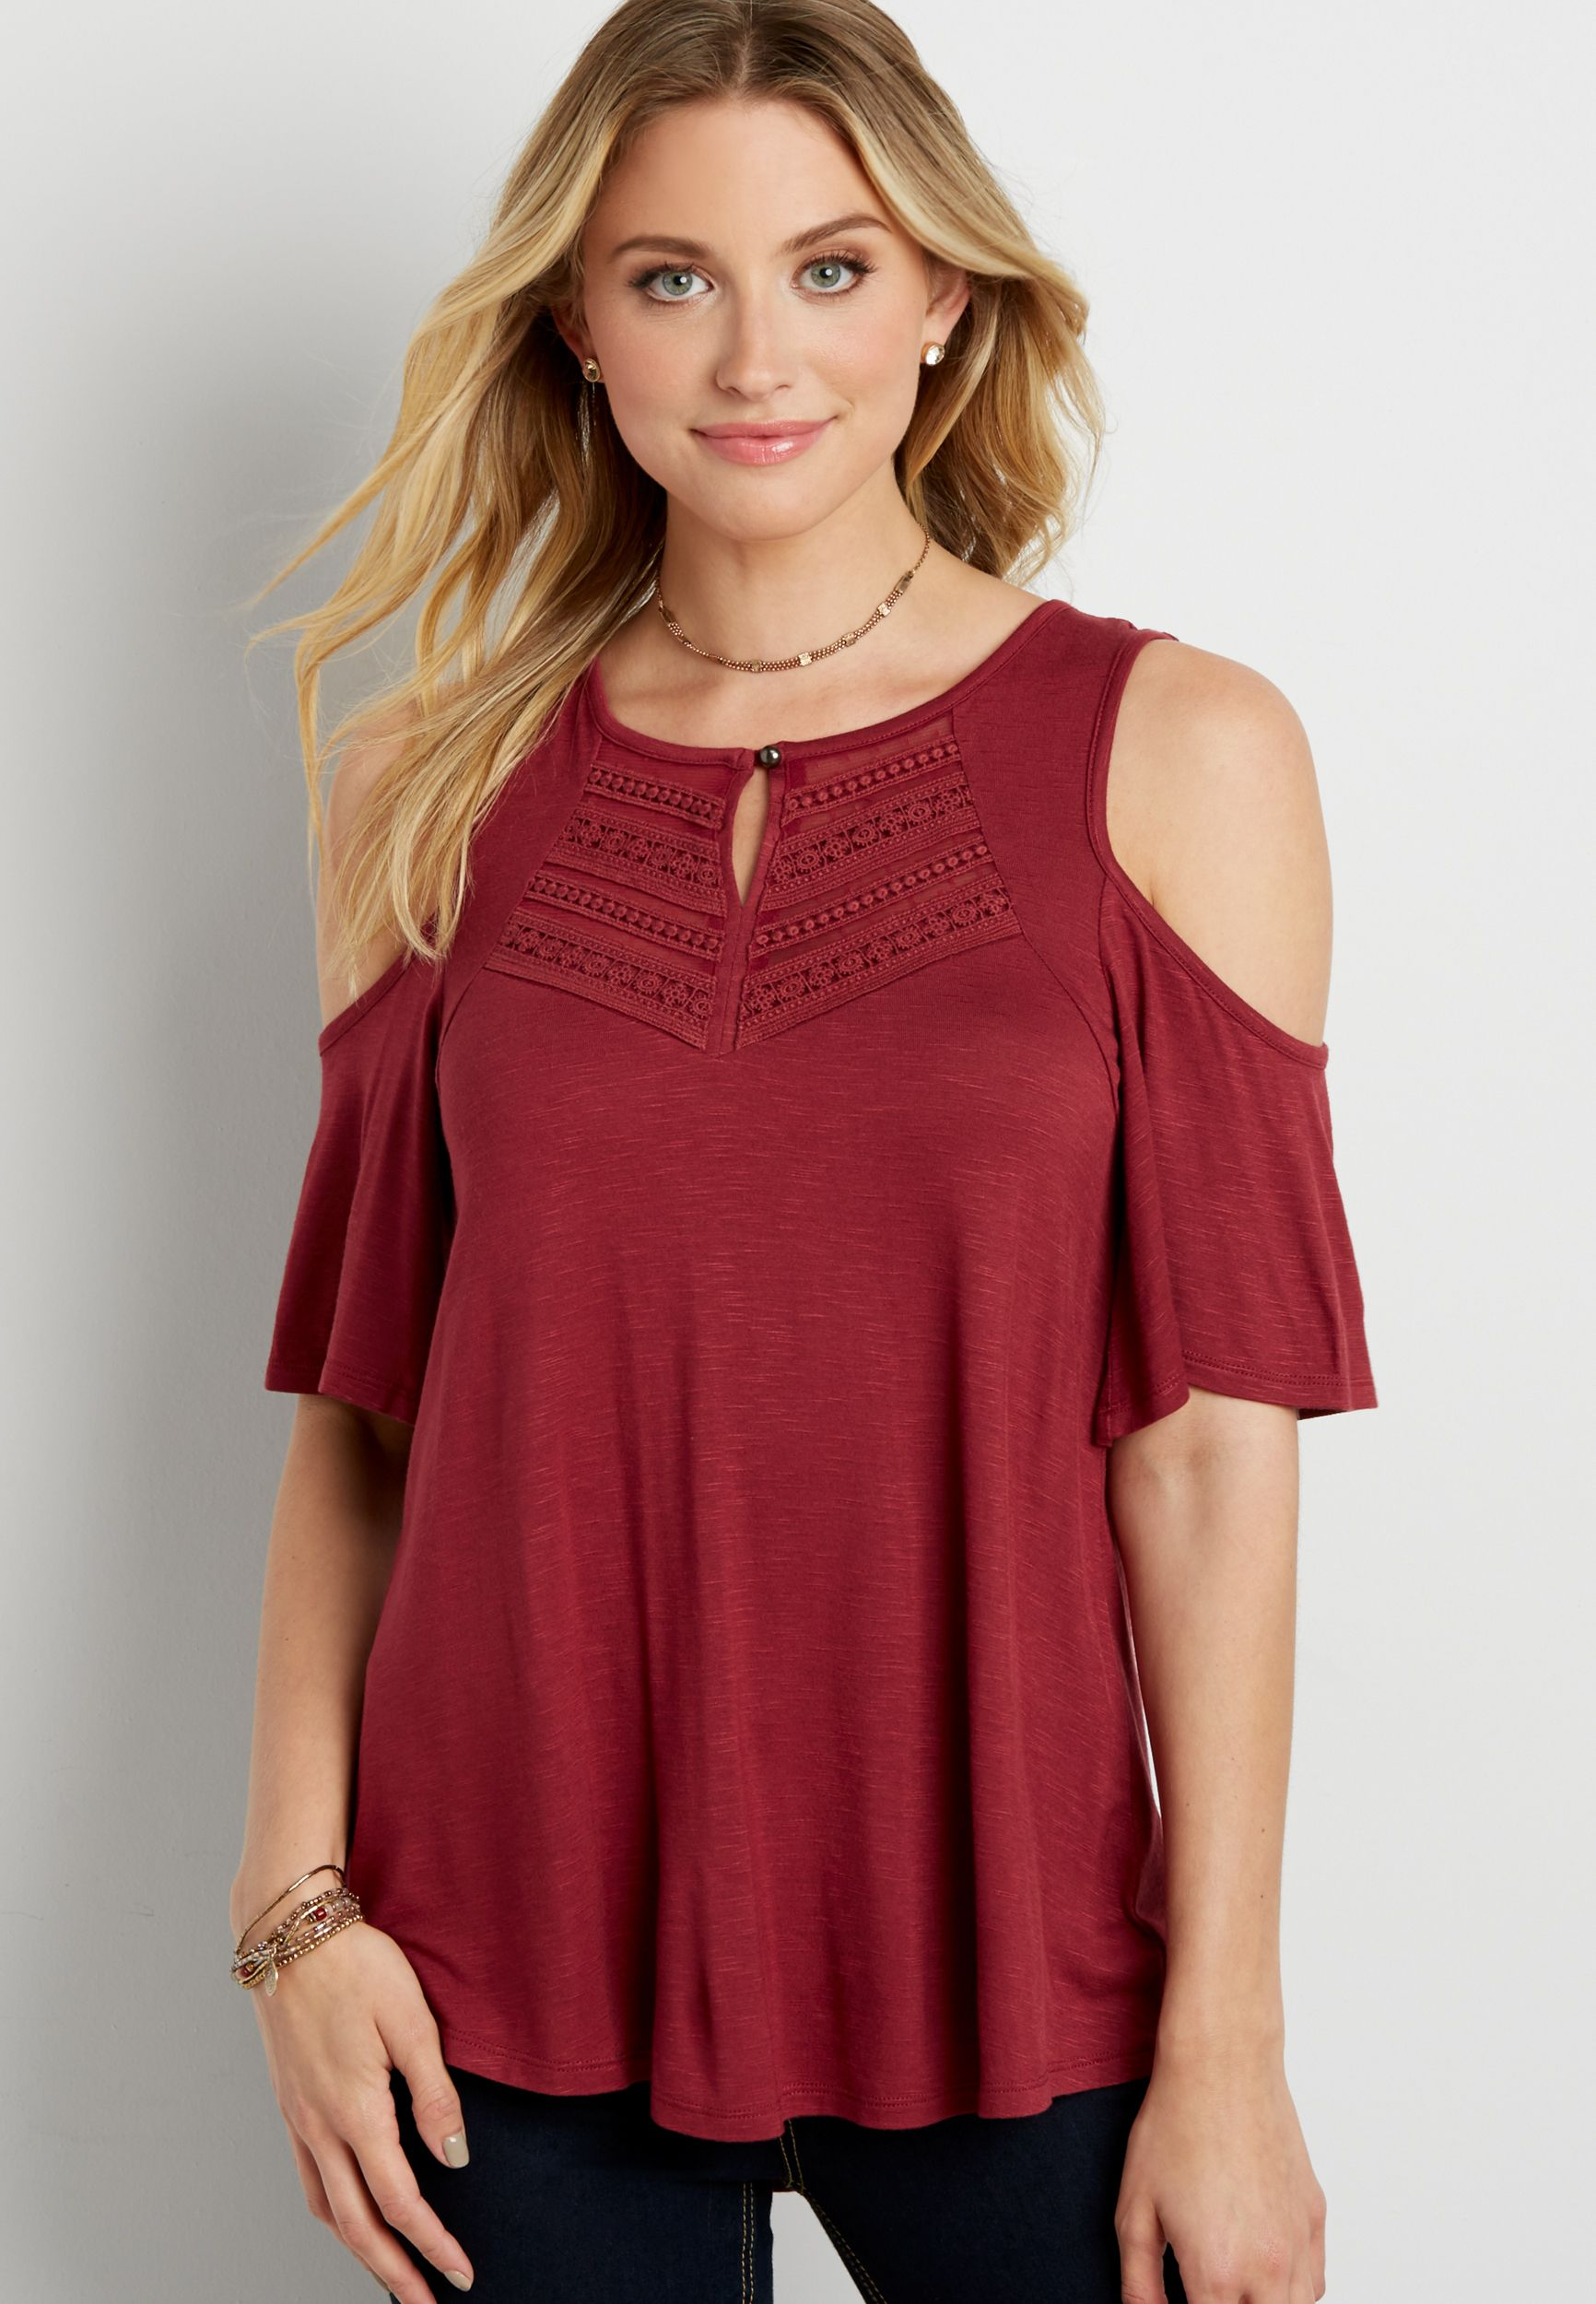 MEDIUM OR LARGE cold shoulder tee with crocheted yoke overlay (original  price, $24.99)